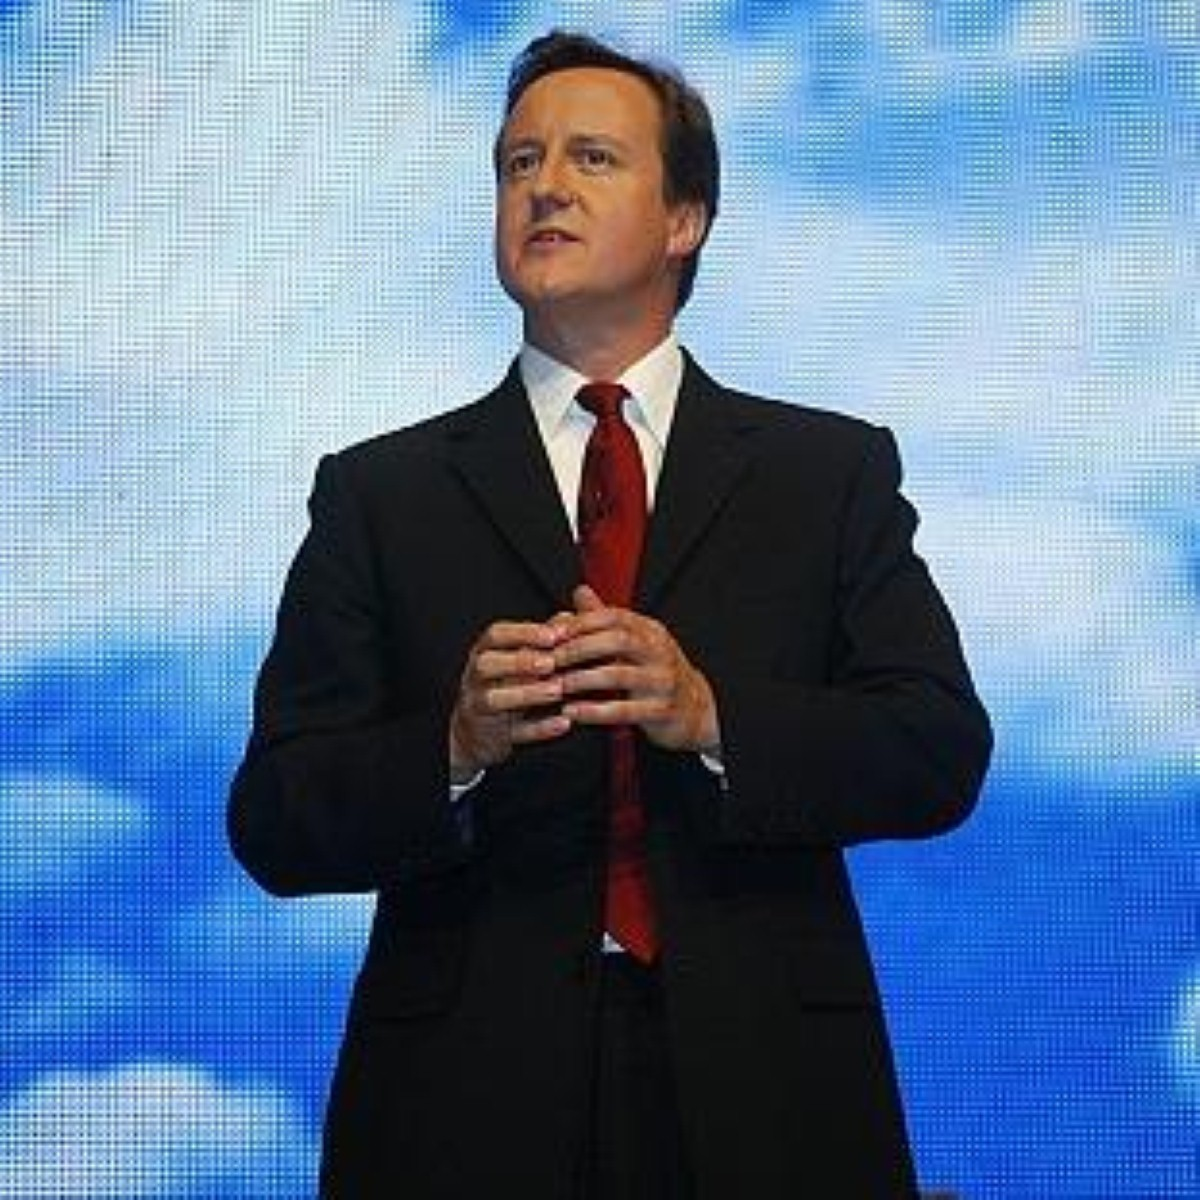 Cameron sought to appear statesman-like today